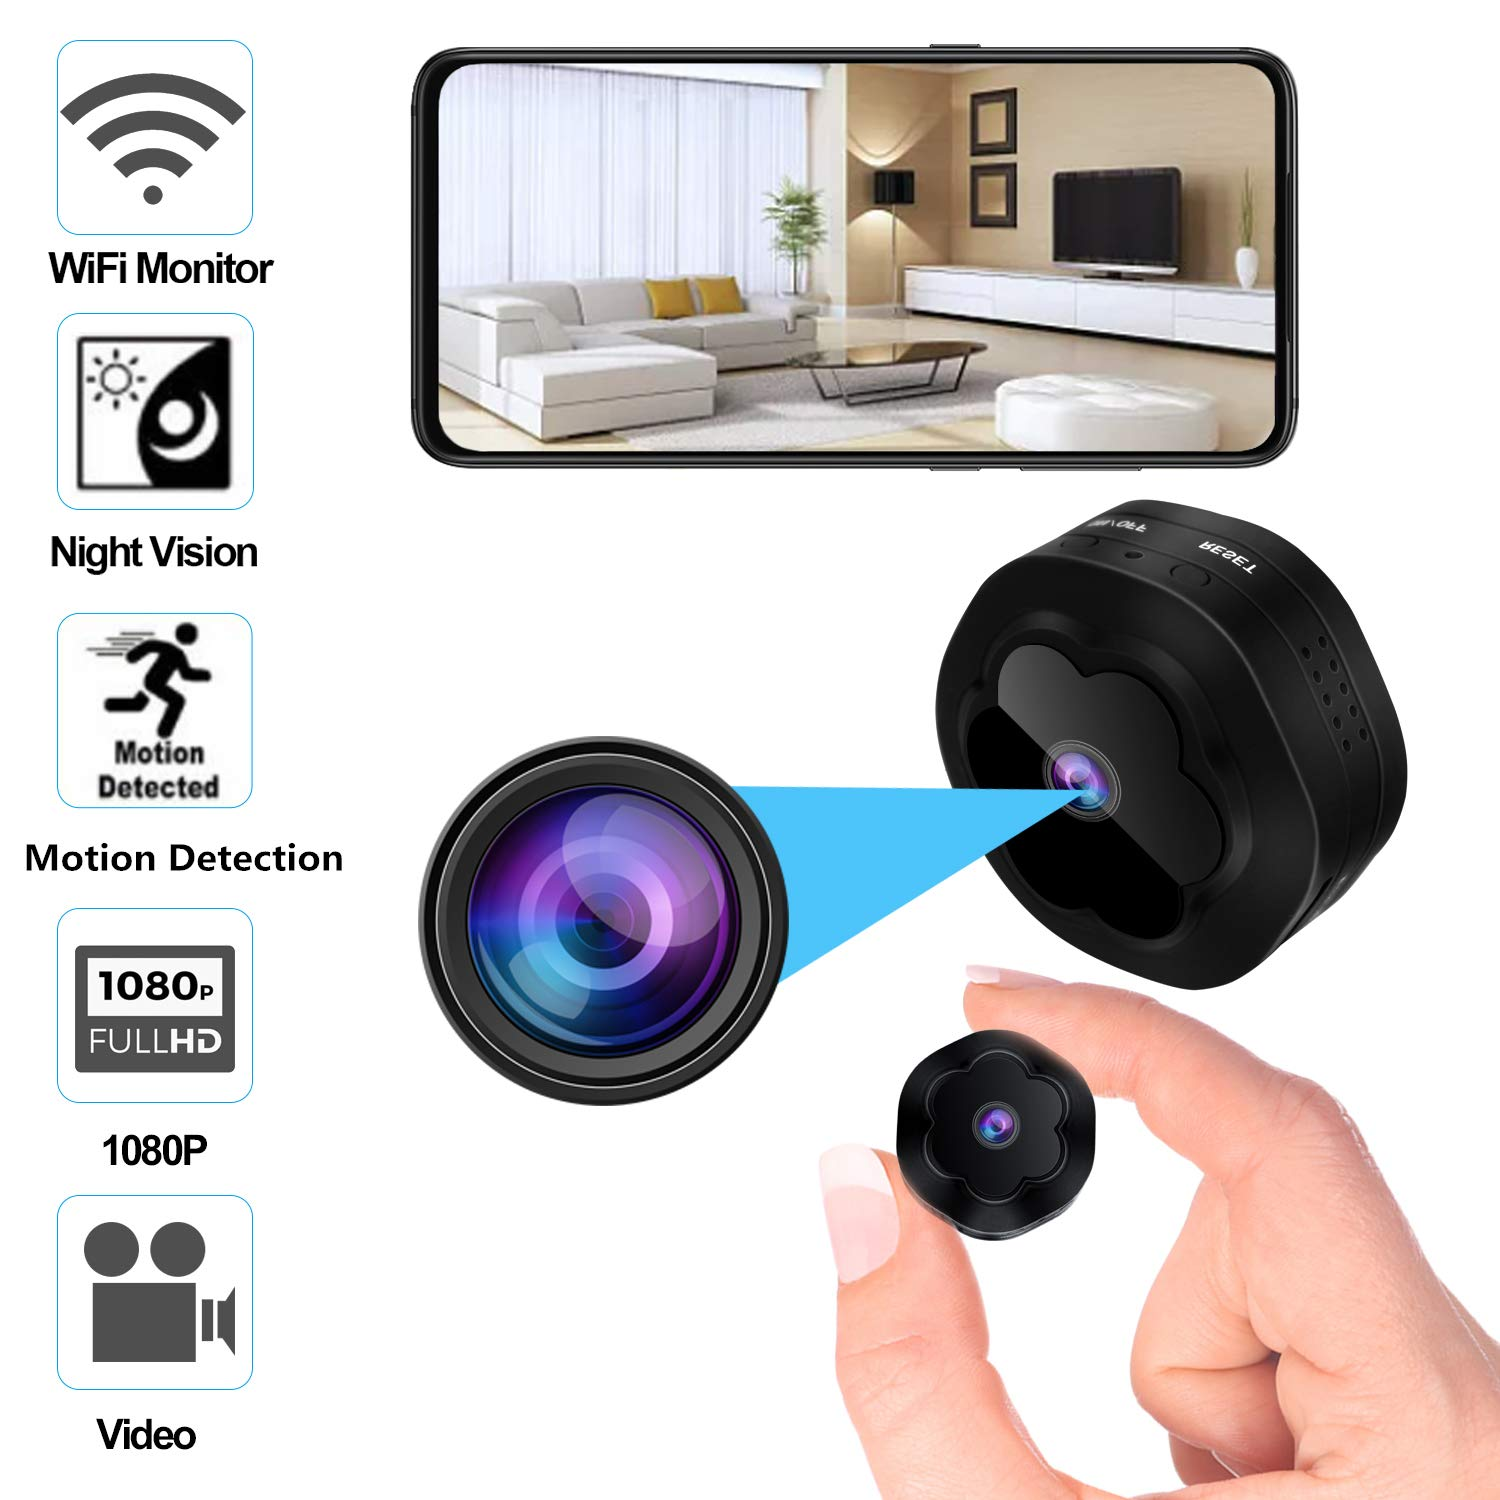 Mini Spy Hidden Camera WiFi Wireless Camera 1080P HD Remotely Monitor, Motion Detection Recording with Night Vision View for Home Security,Indoor Small Hidden Camera Nanny Cam for Children/Office by Beraspot